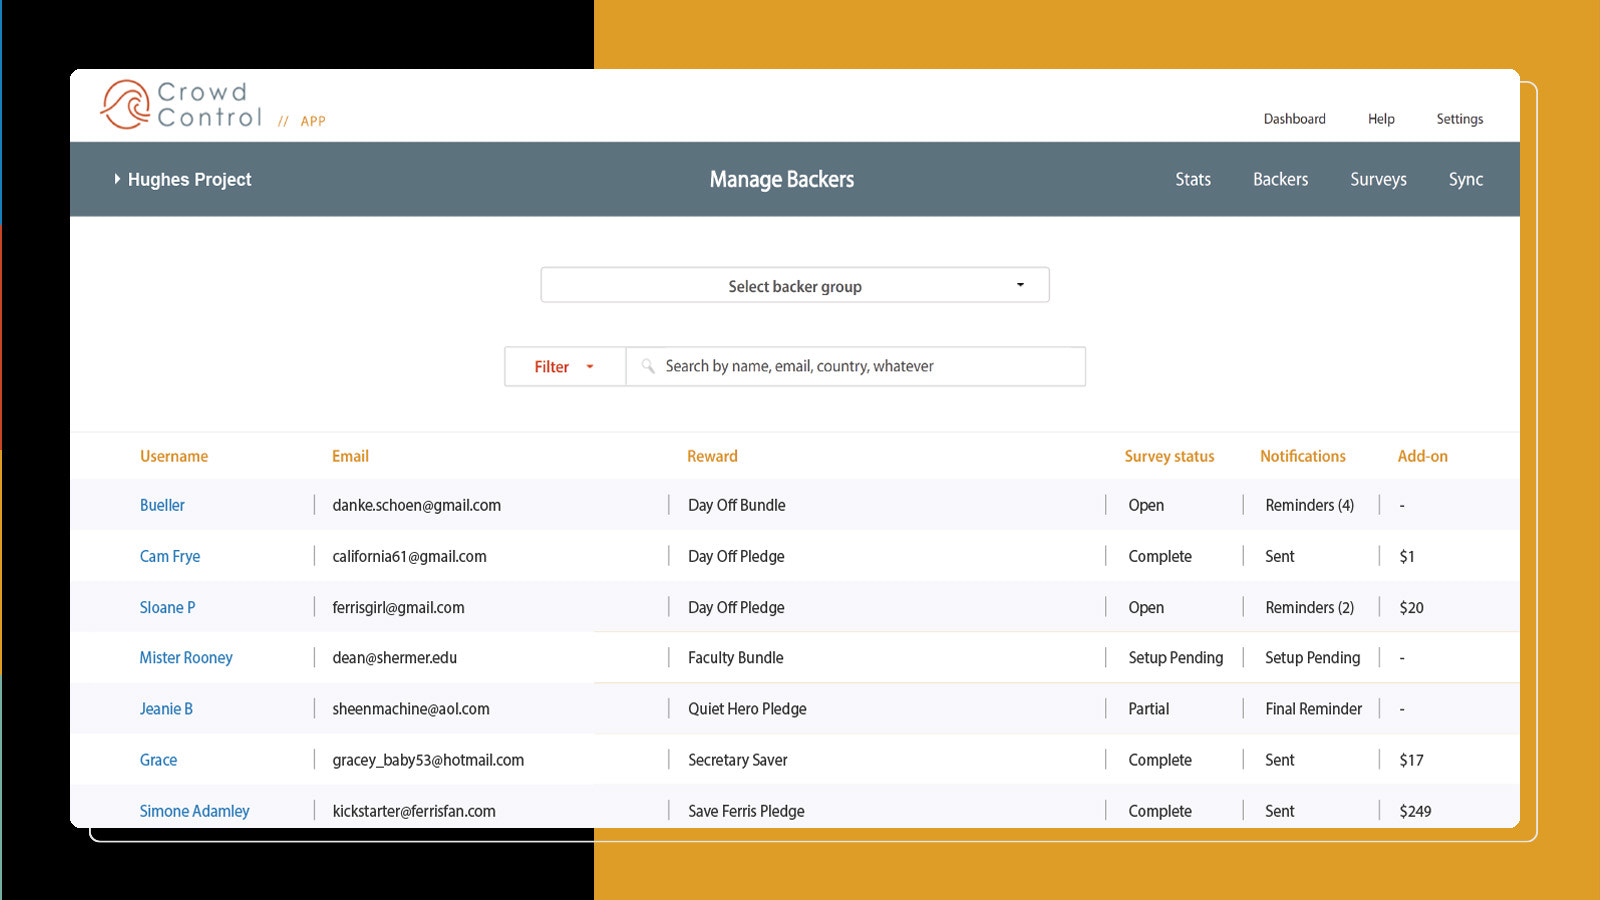 Overview of backer management and survey activity